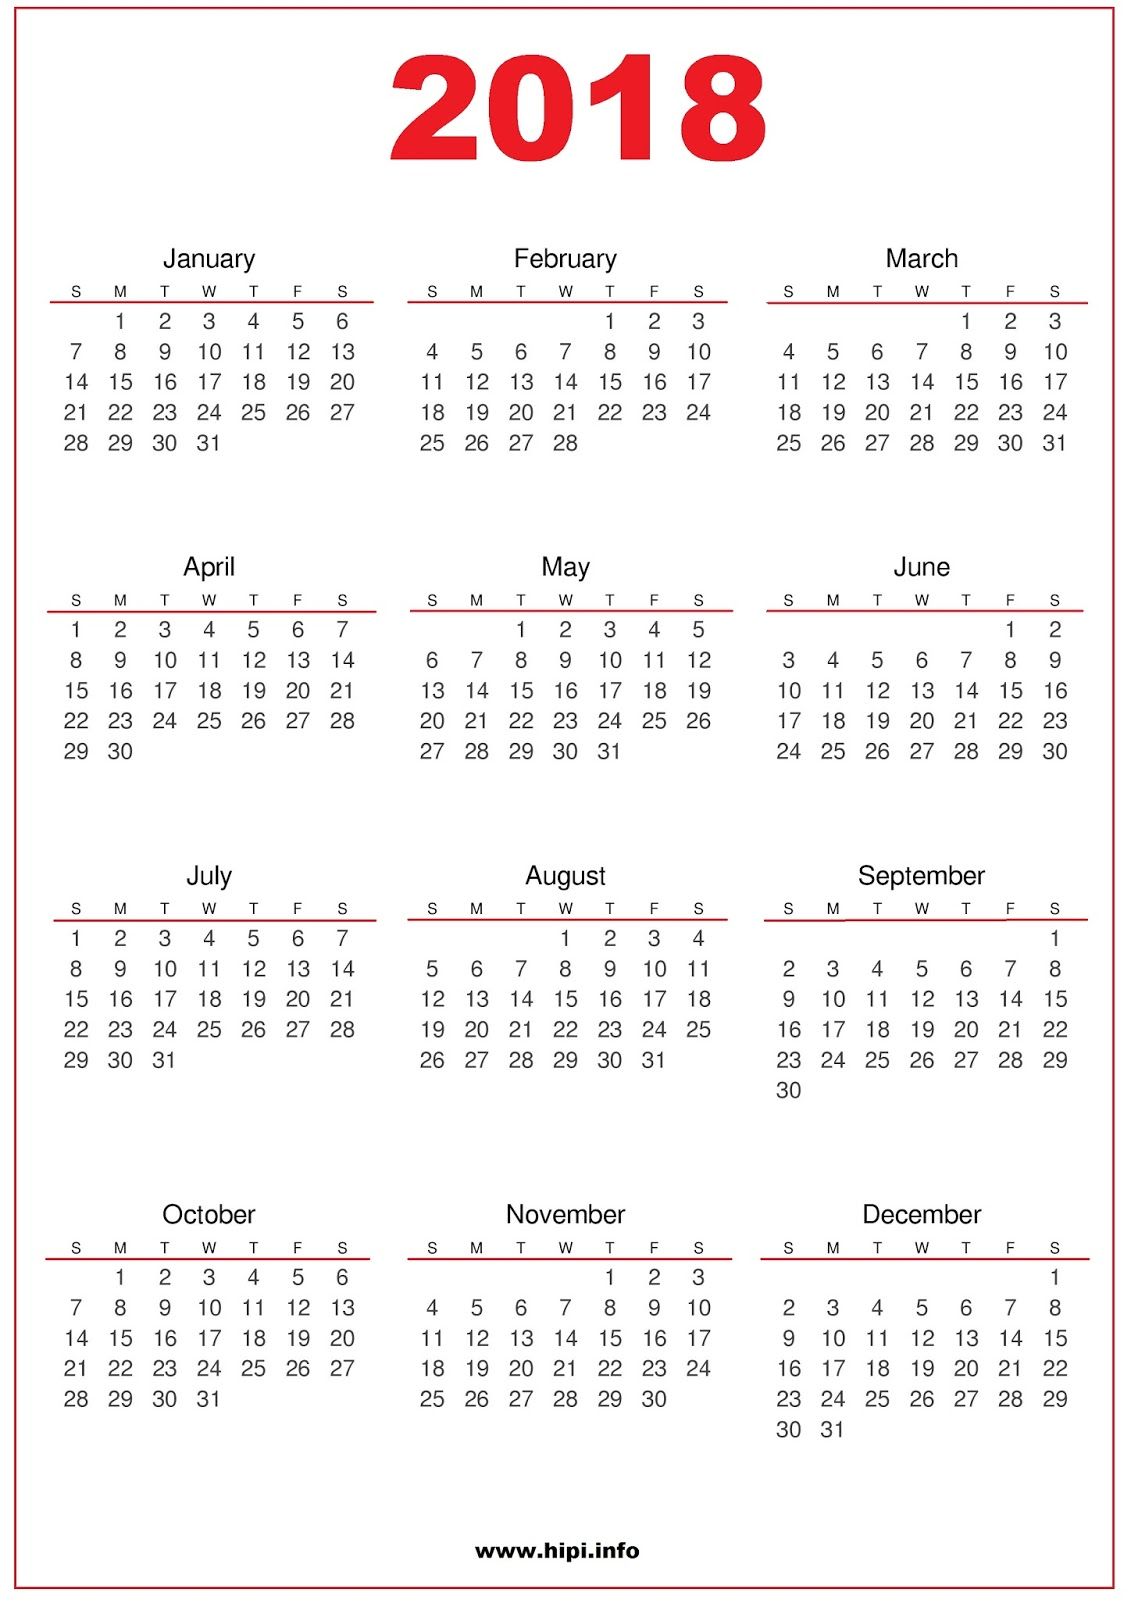 download a calendar